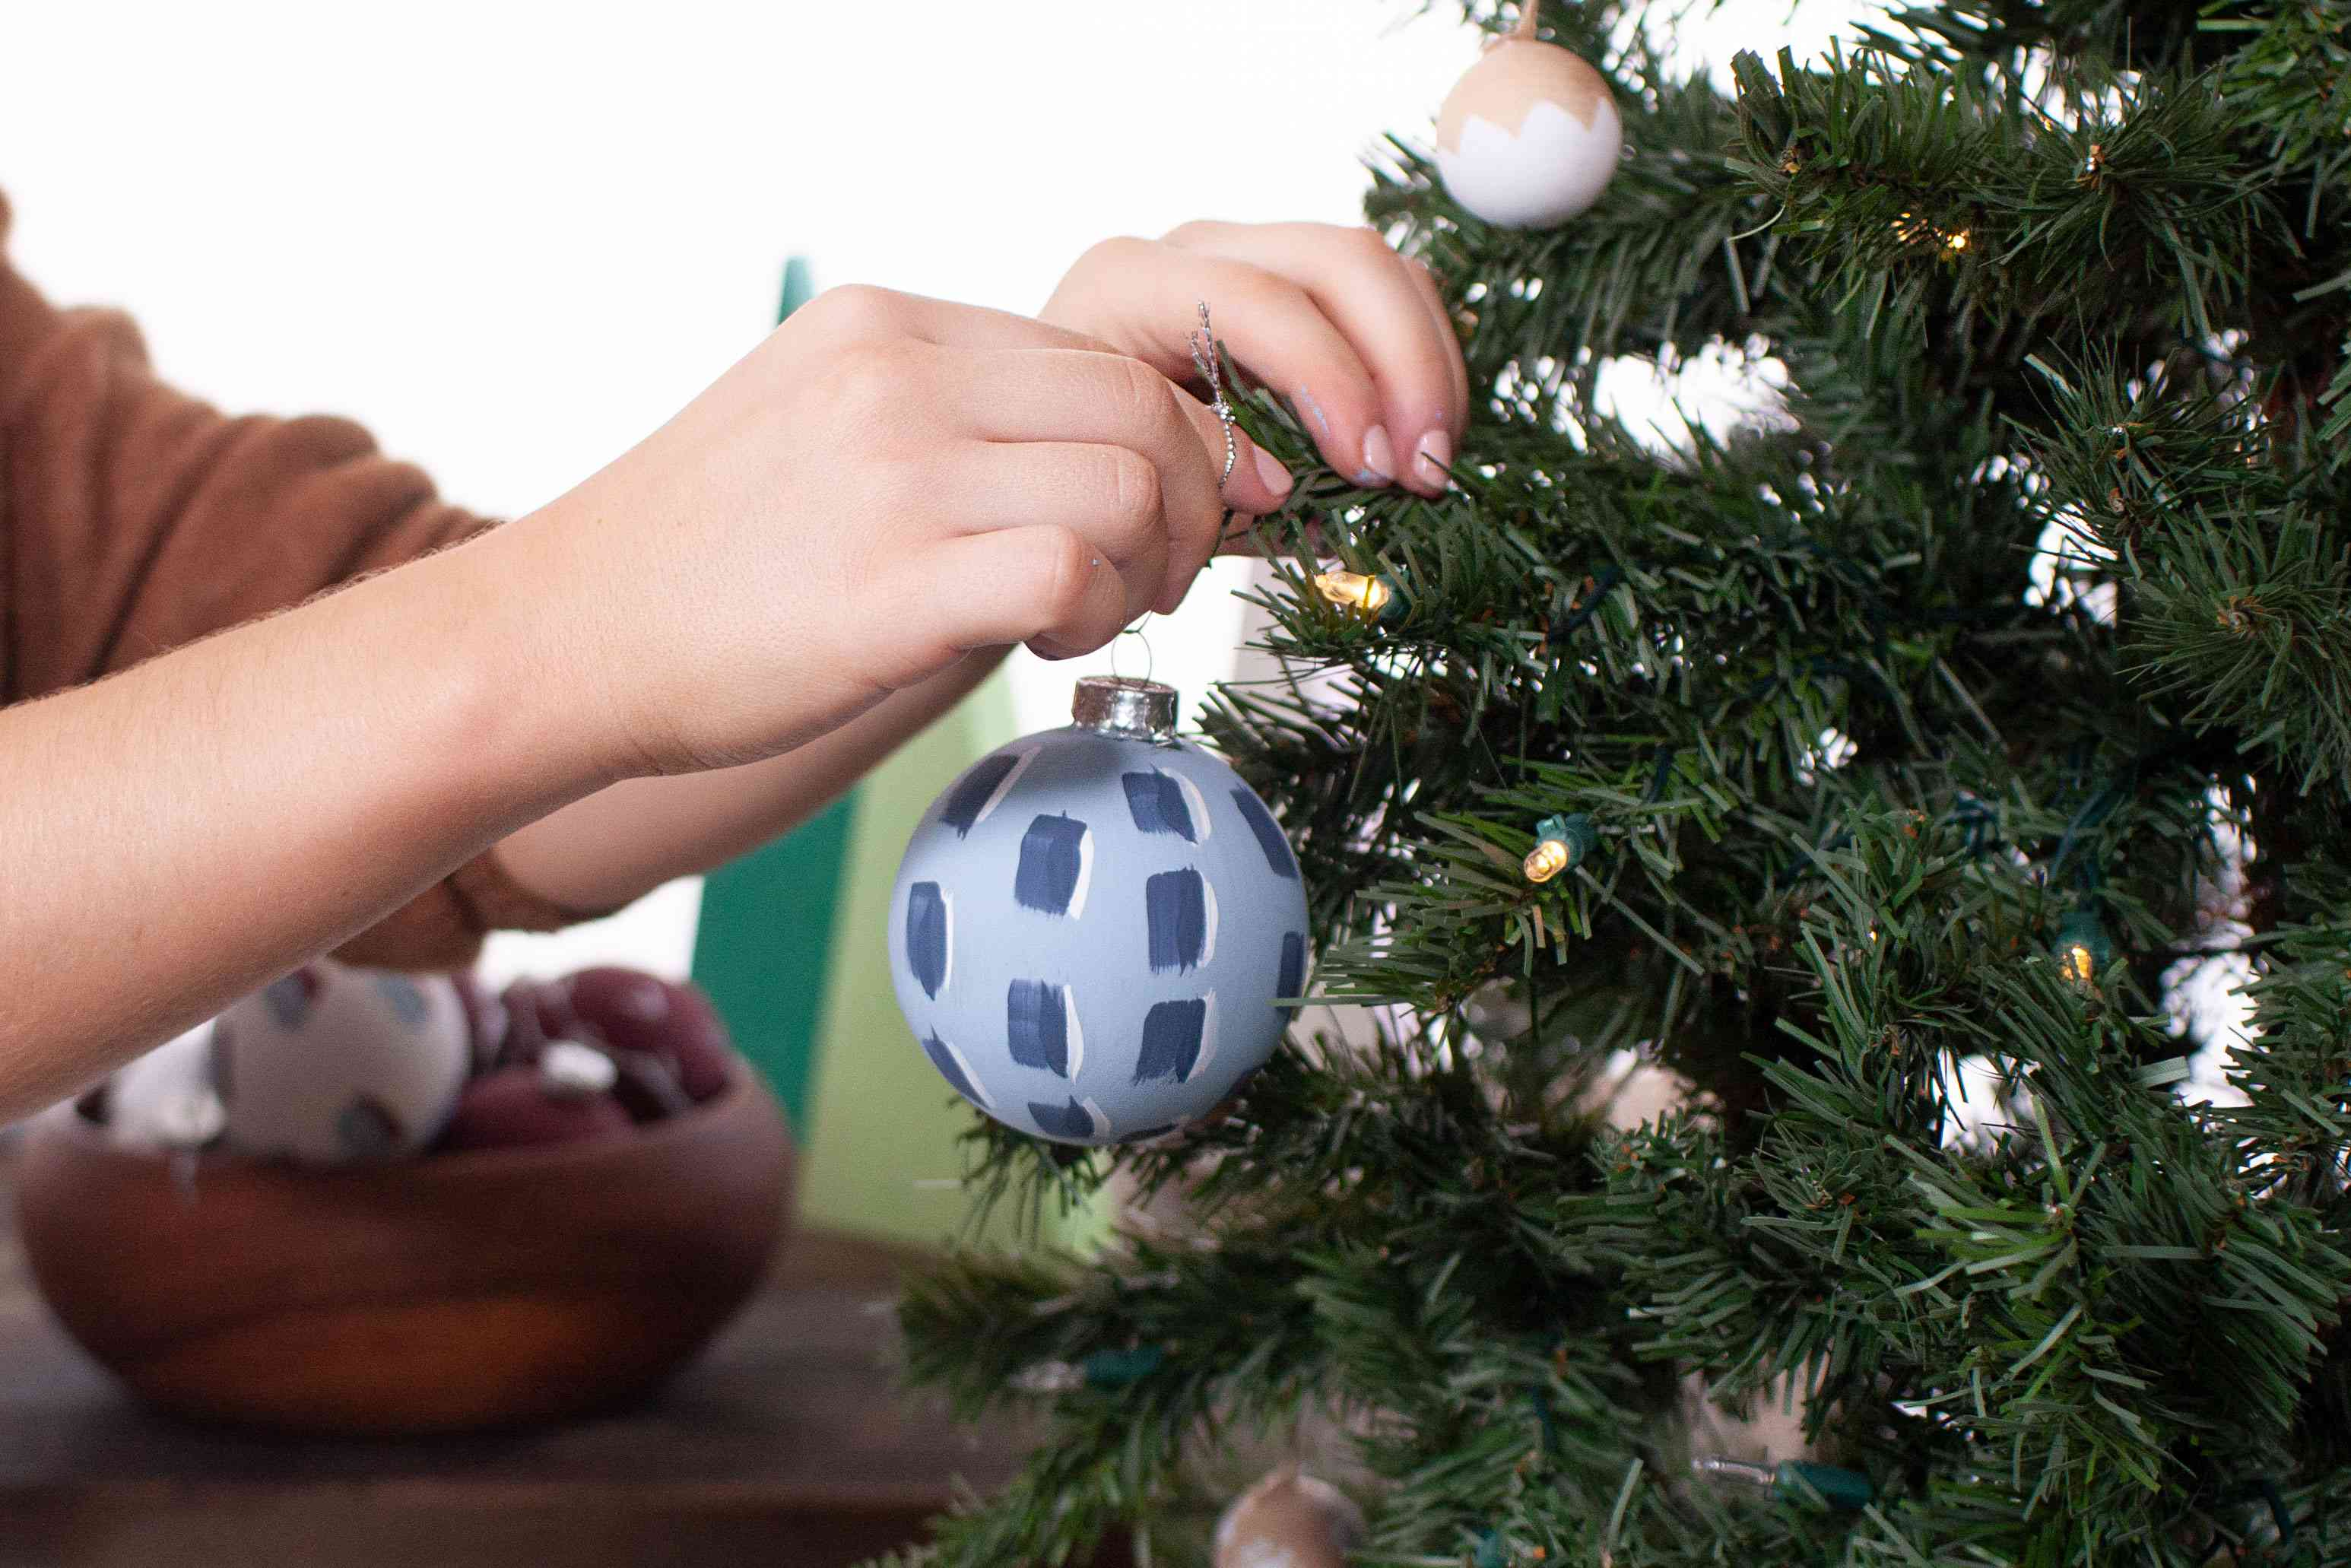 placing a painted ornament on the tree